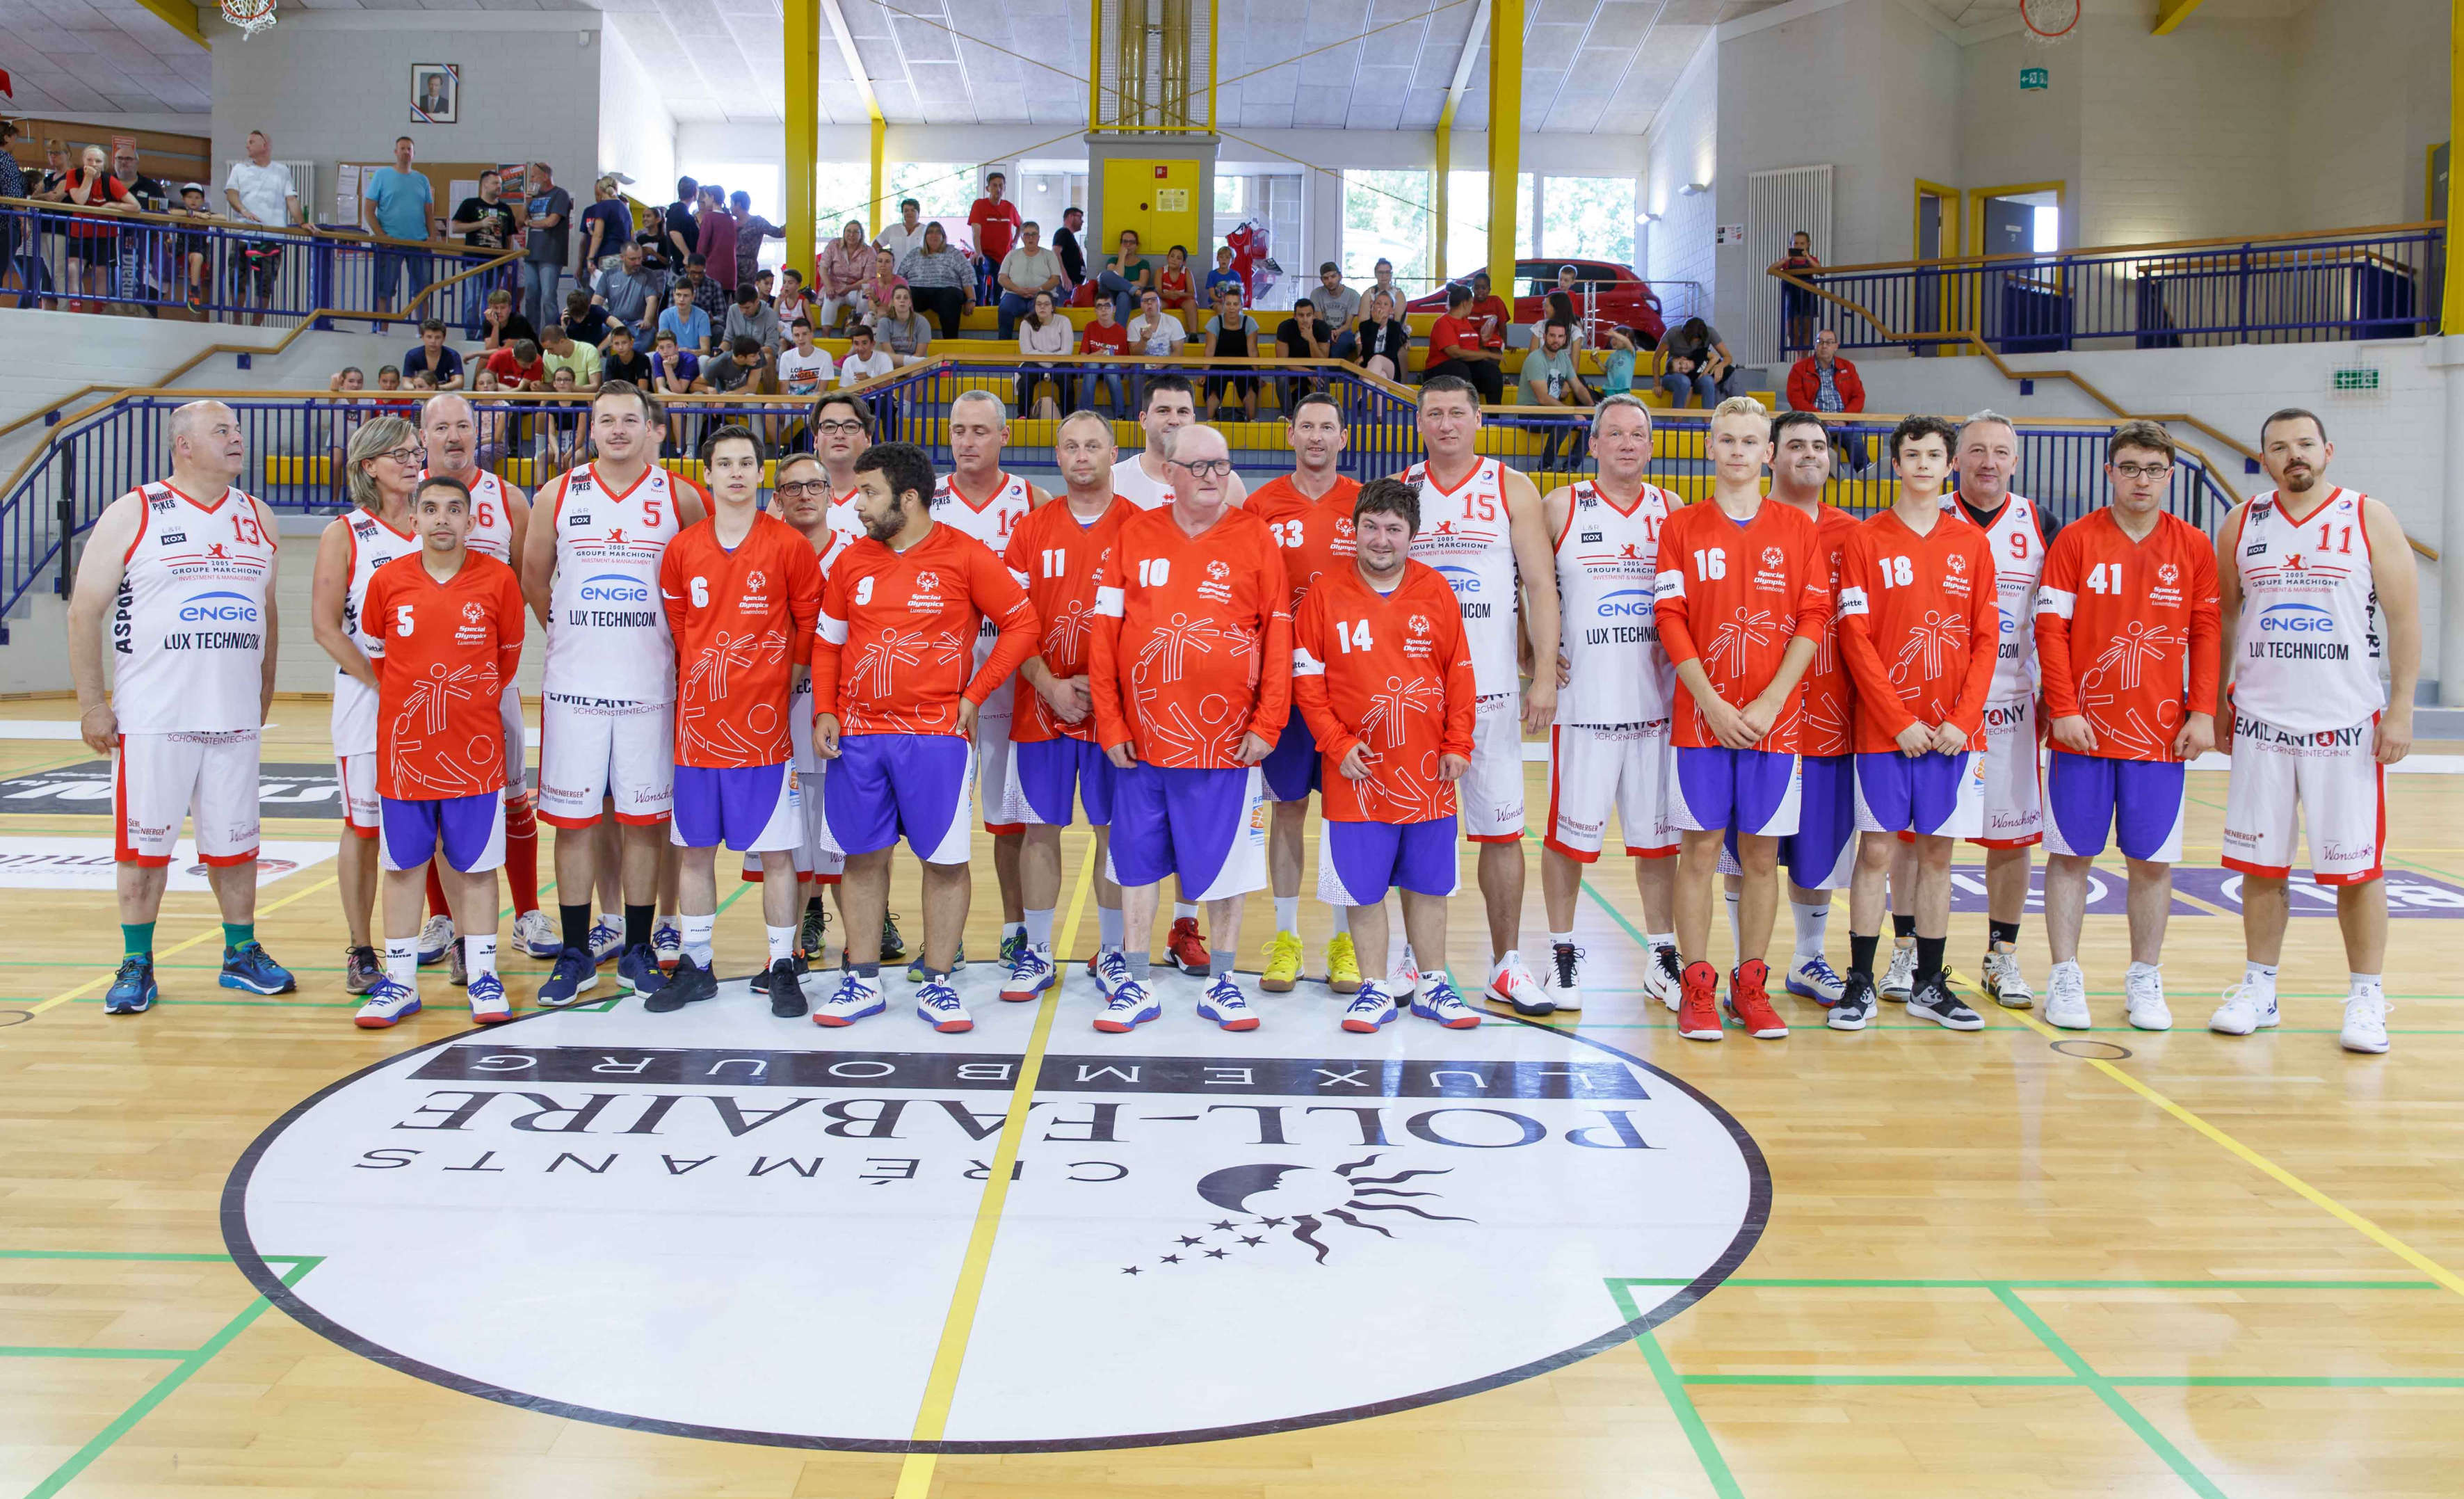 Pikes Promi-match vs Special Olympics um Season opening (14.09.19)